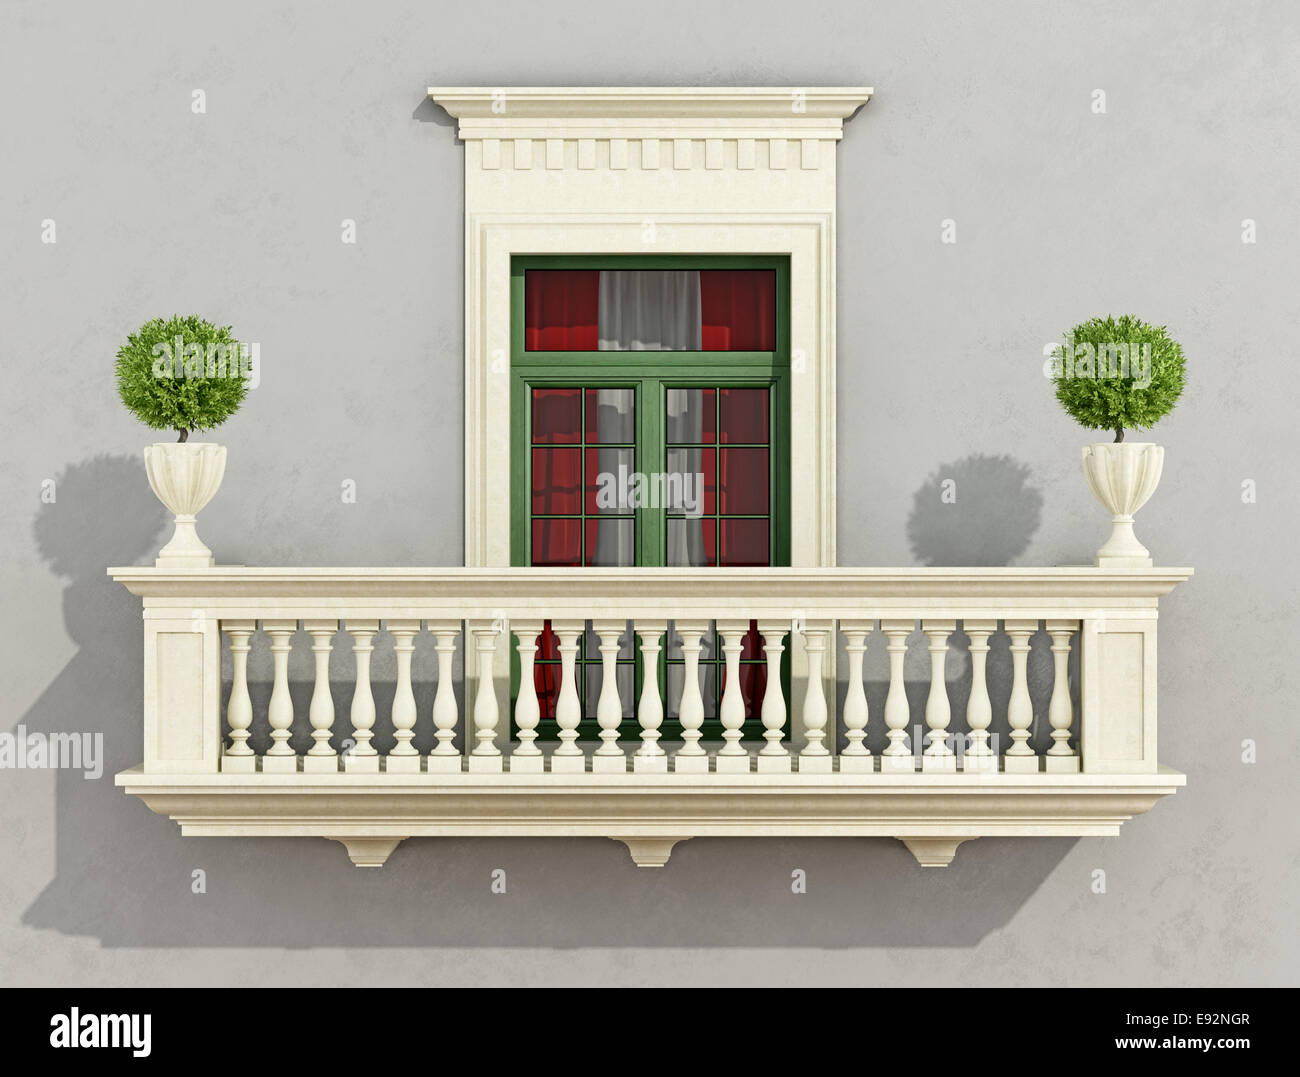 graue fassade cool download graue fassade stockfoto bild von zeilen with graue fassade. Black Bedroom Furniture Sets. Home Design Ideas